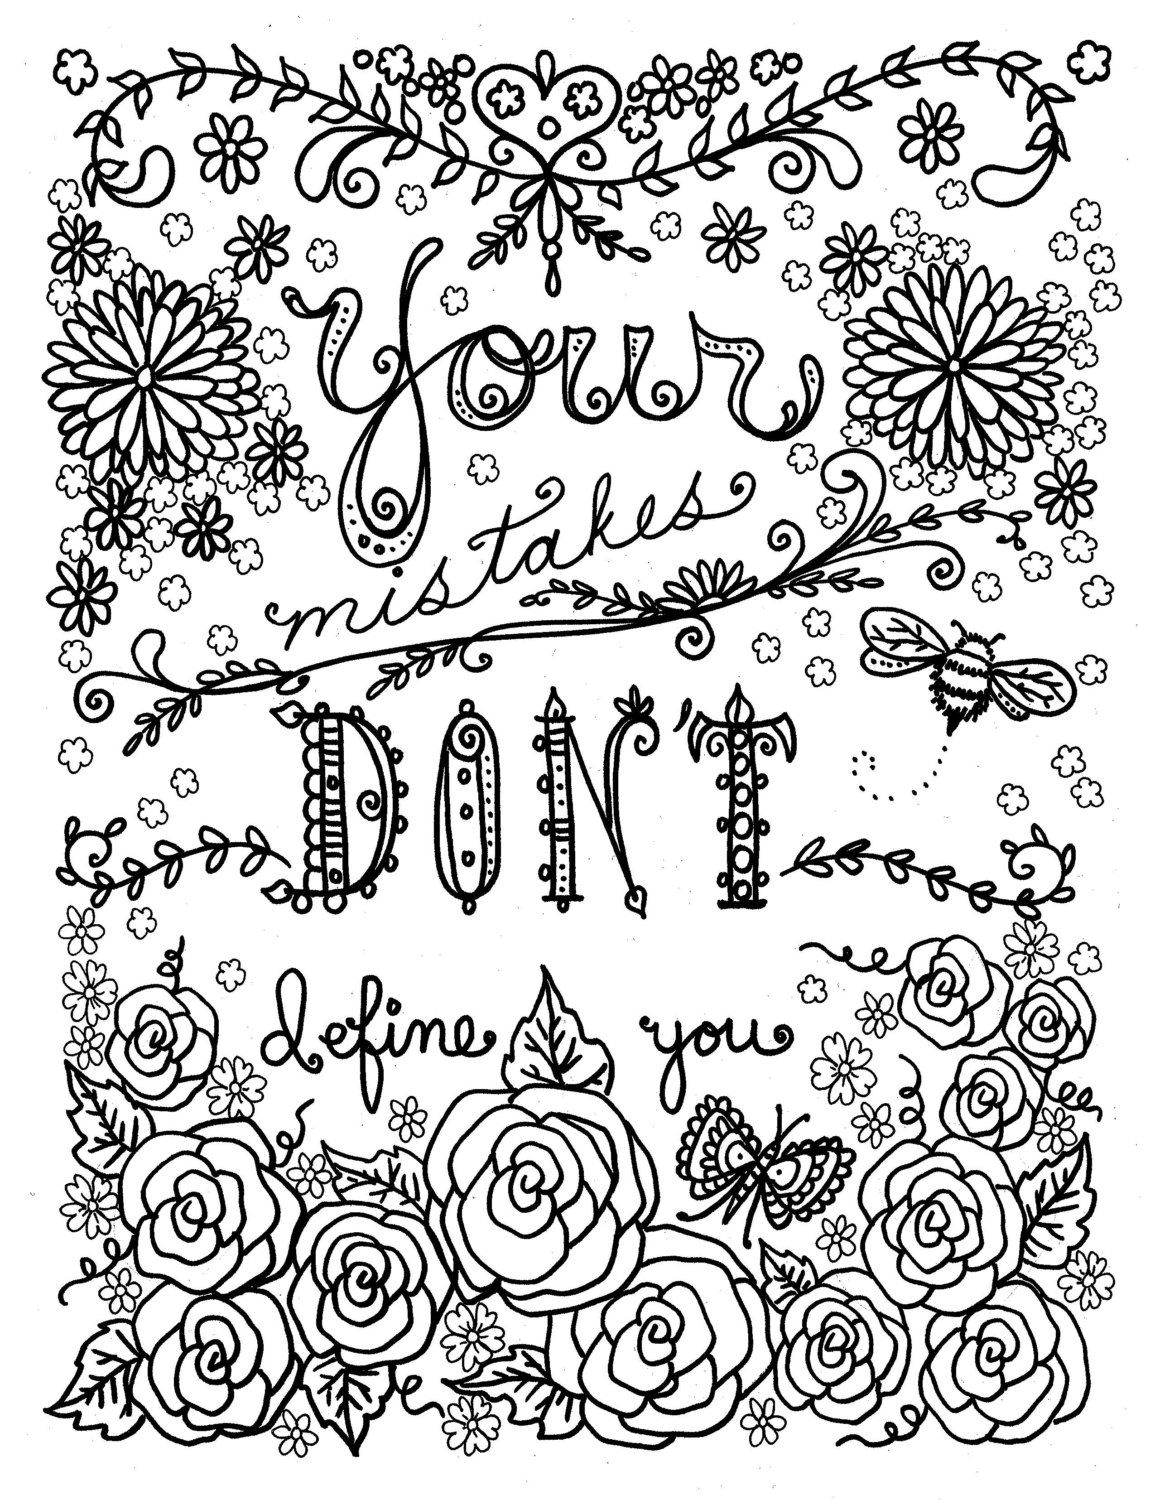 quote coloring pages for adults | Pin by iDMe on Embroidery | Quote coloring pages, Coloring ...